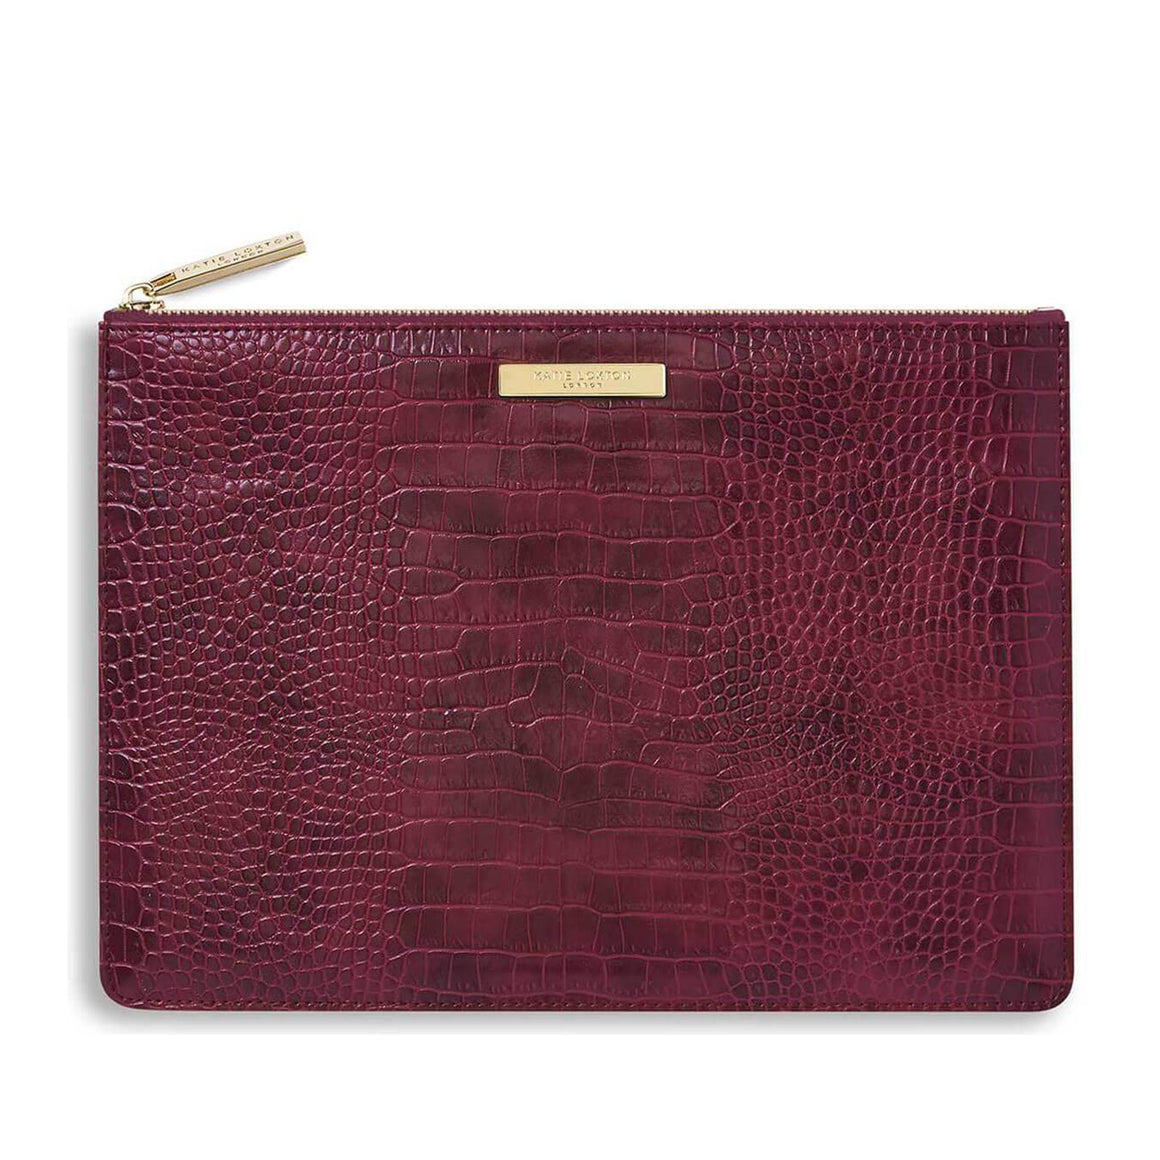 Celine Croc Perfect Pouch for Women in Burgundy